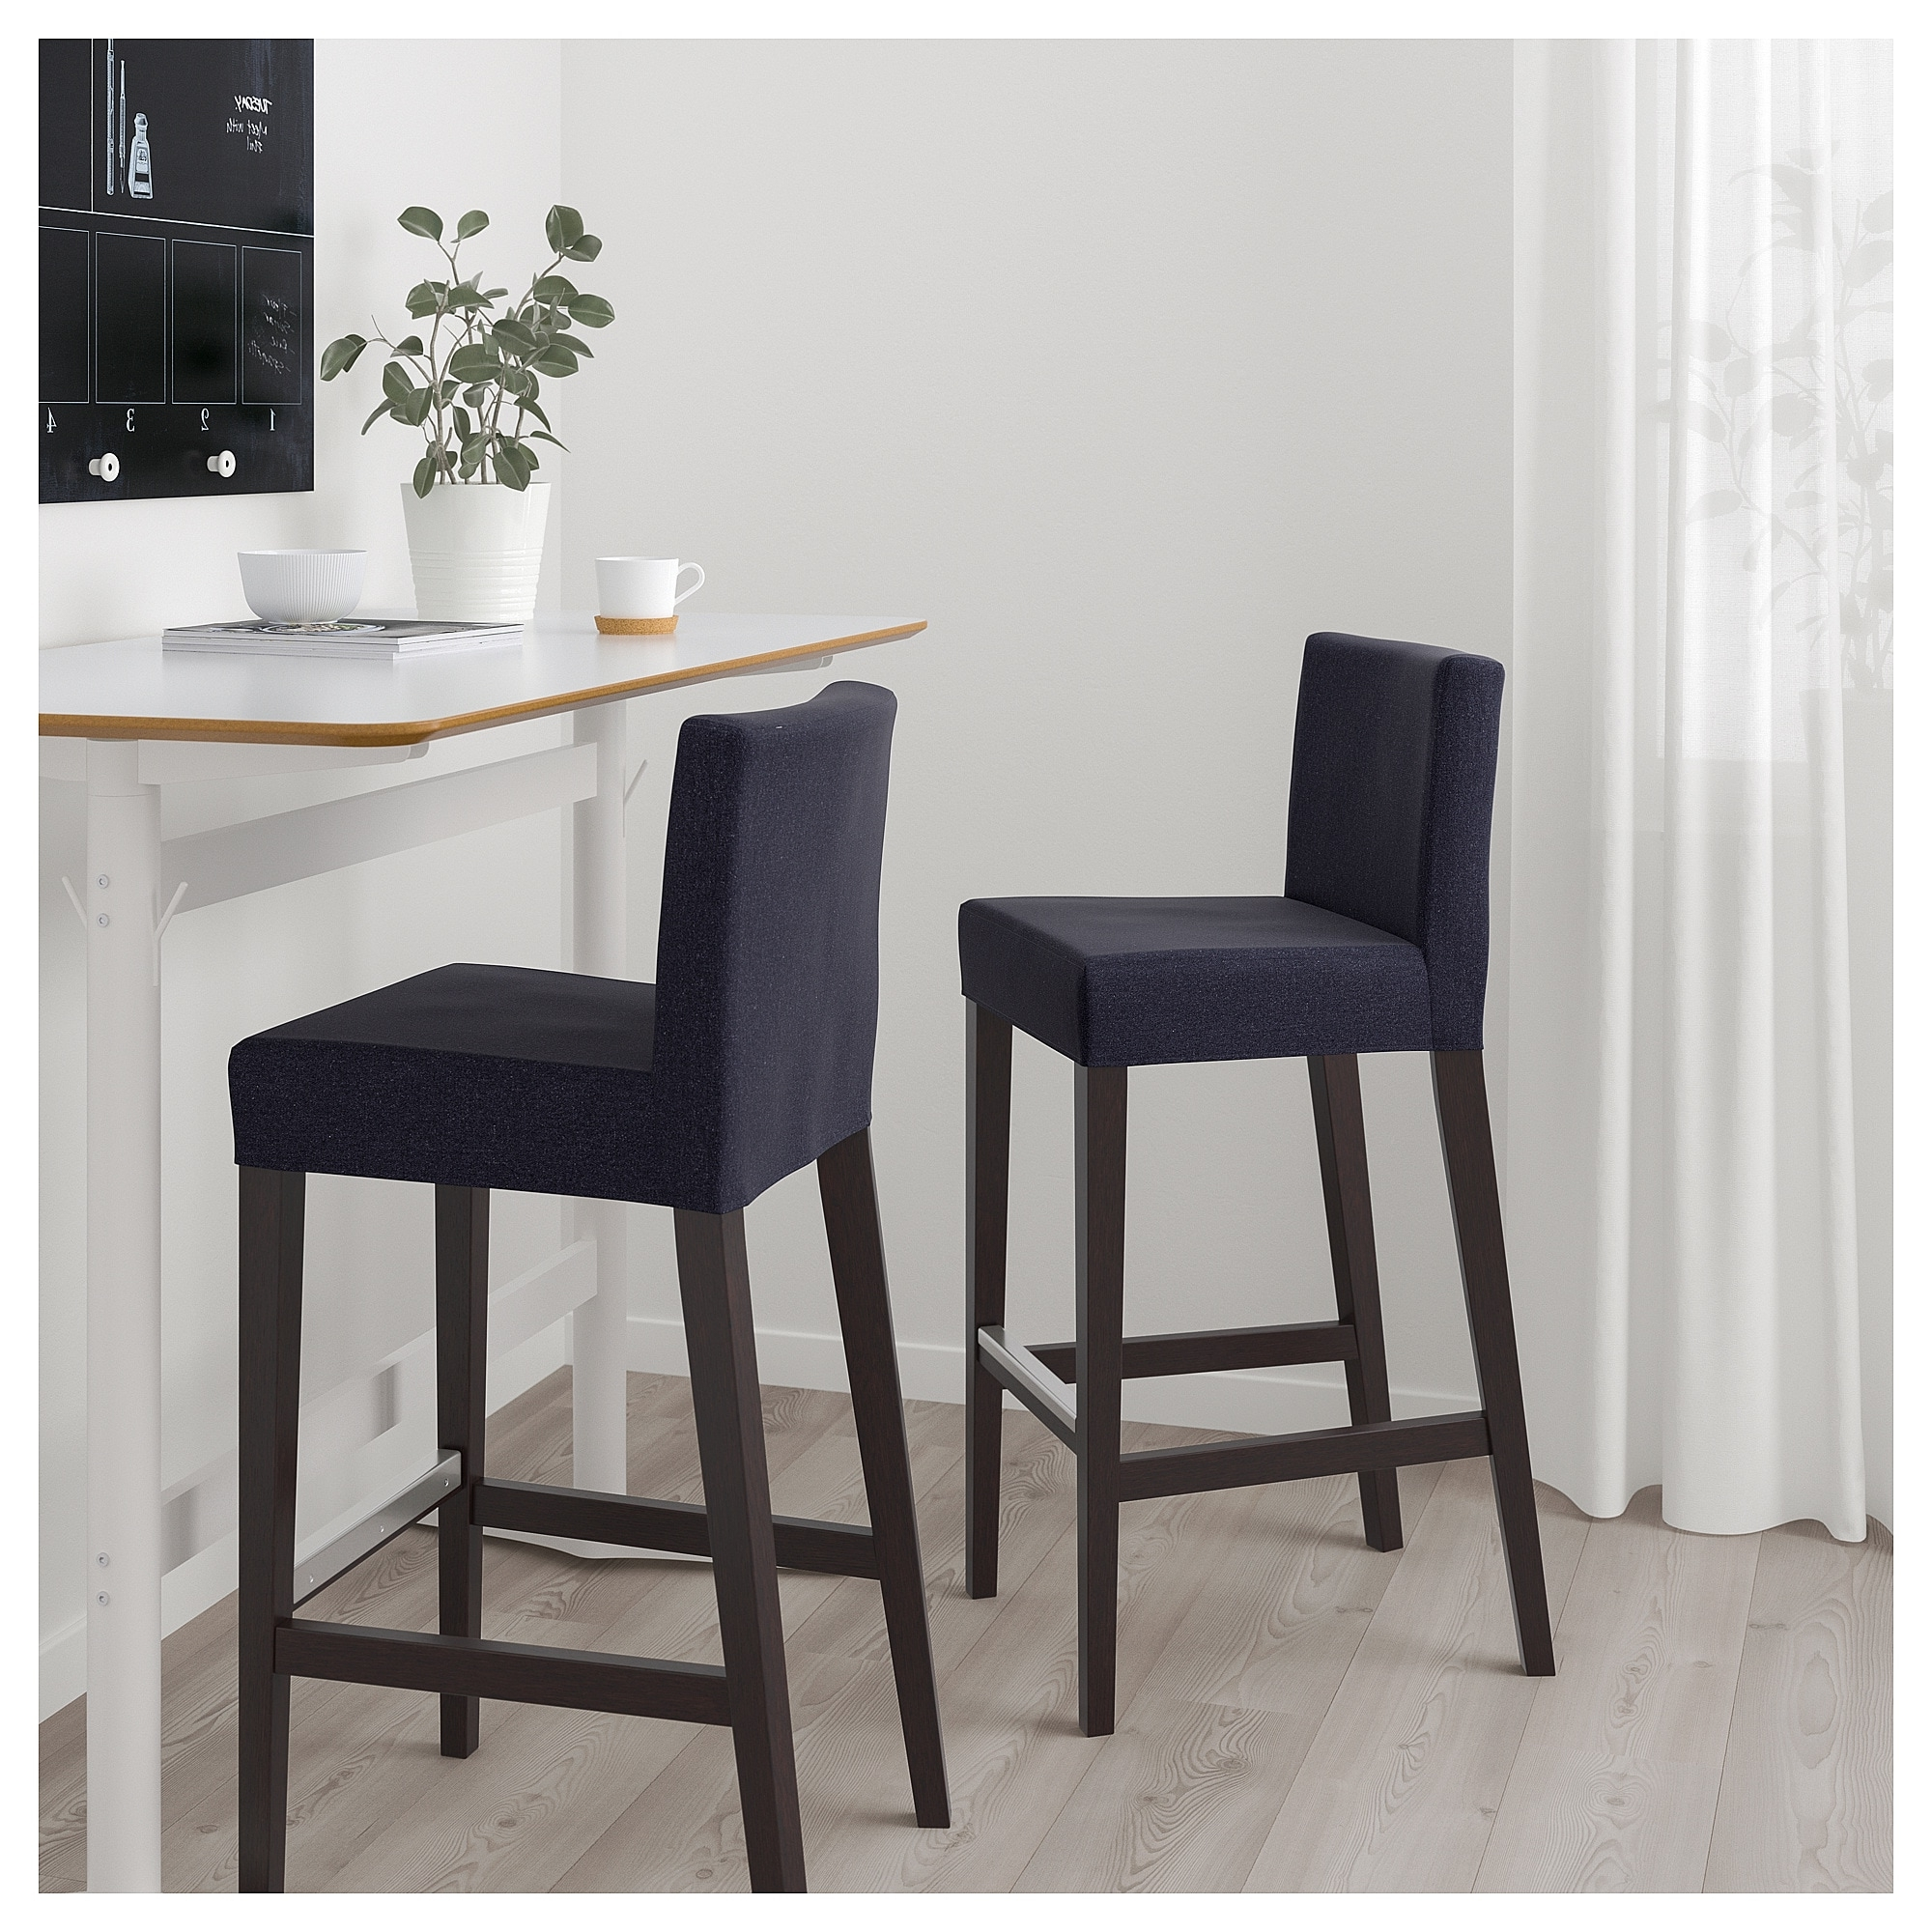 Jaxon Grey 5 Piece Extension Counter Sets With Fabric Stools Pertaining To Most Up To Date Global Furniture Bar Table Black (Gallery 11 of 25)